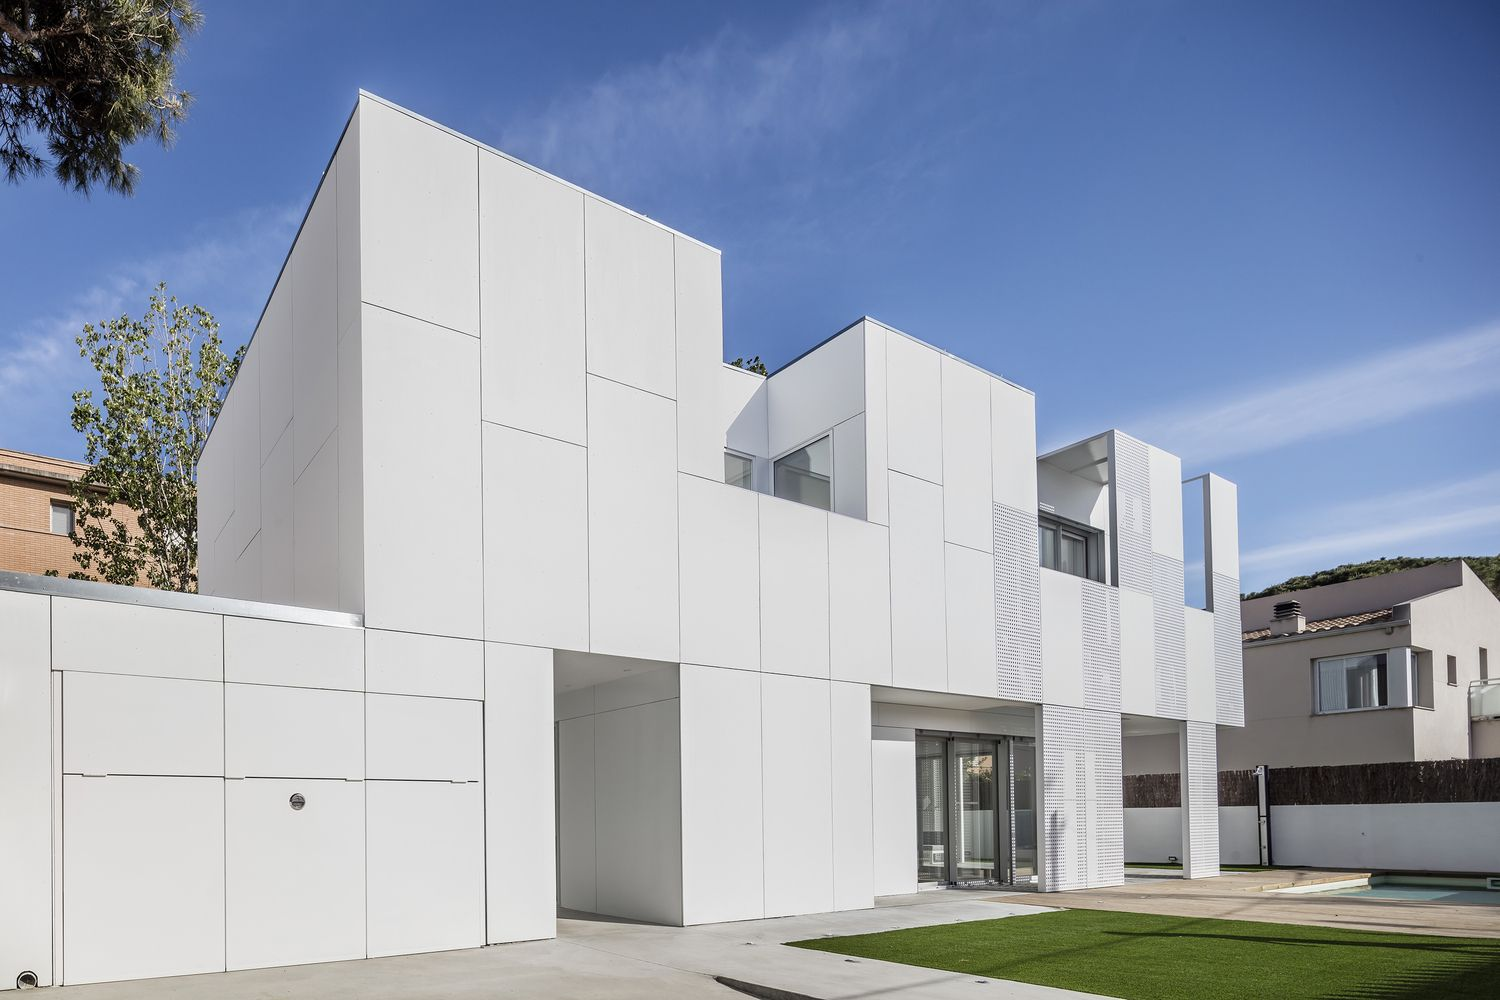 Gallery of single family house castelldefels ral also rh pinterest